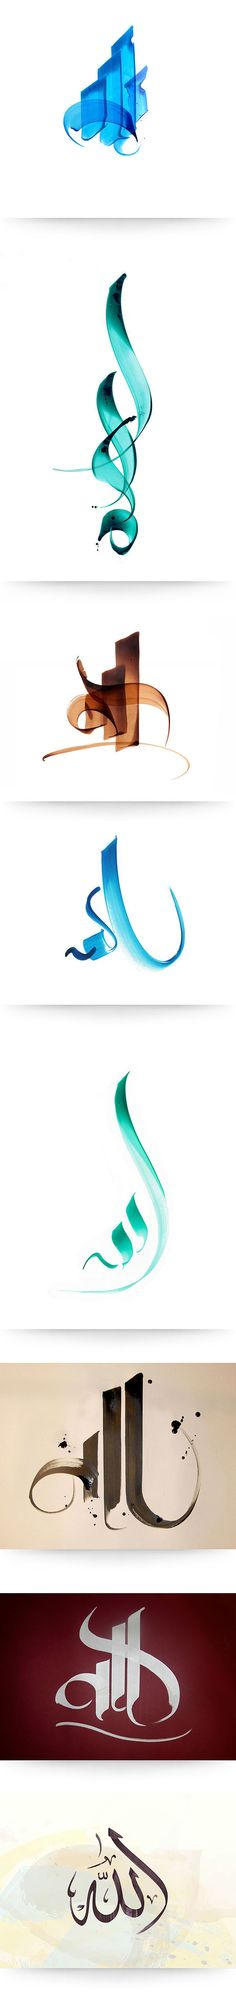 Arabic language is beautiful not just because of Arabic calligraphy tools